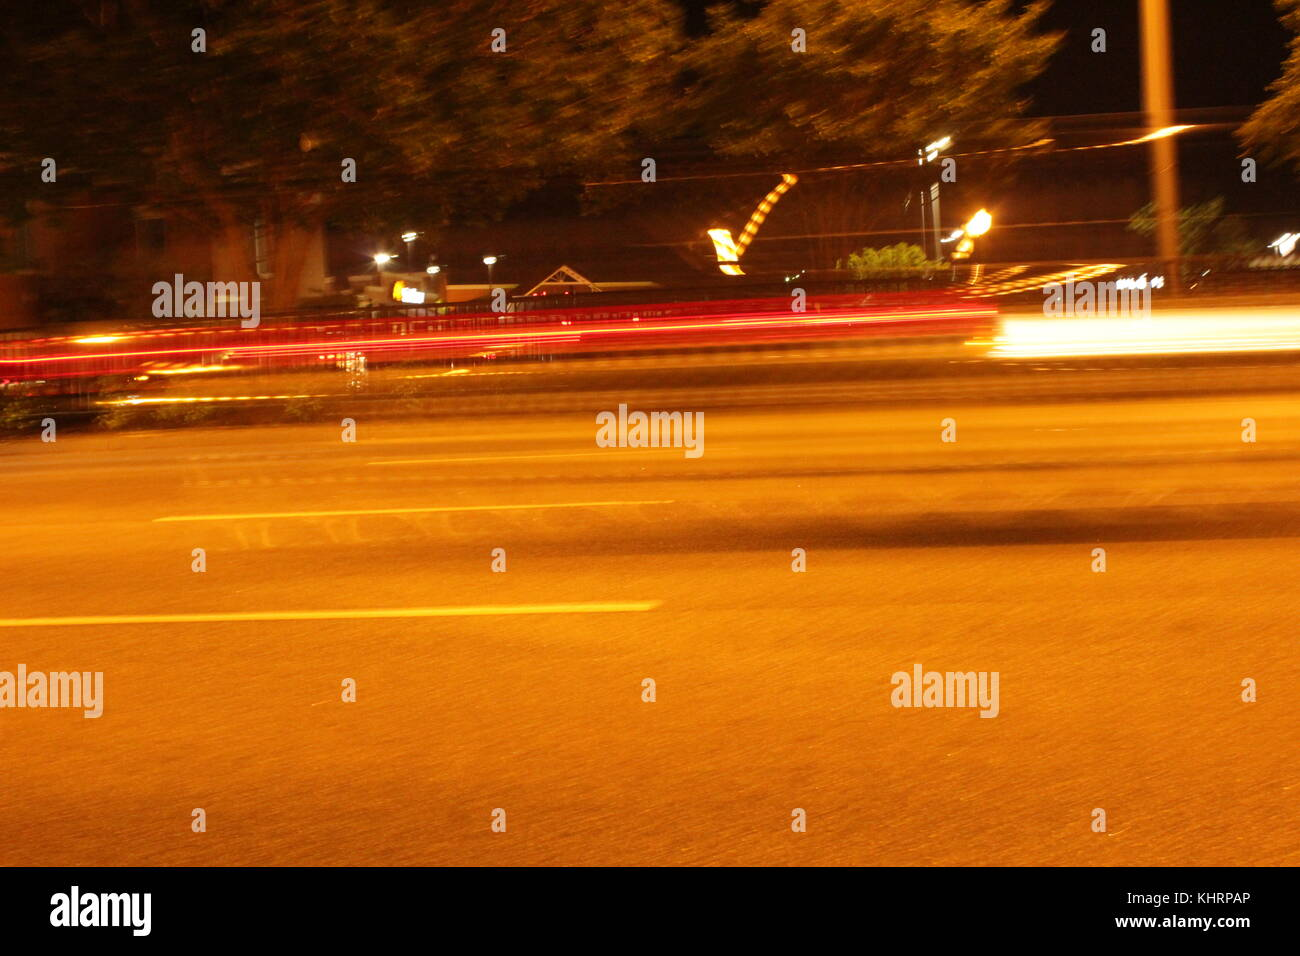 A car zooming down the street - Stock Image